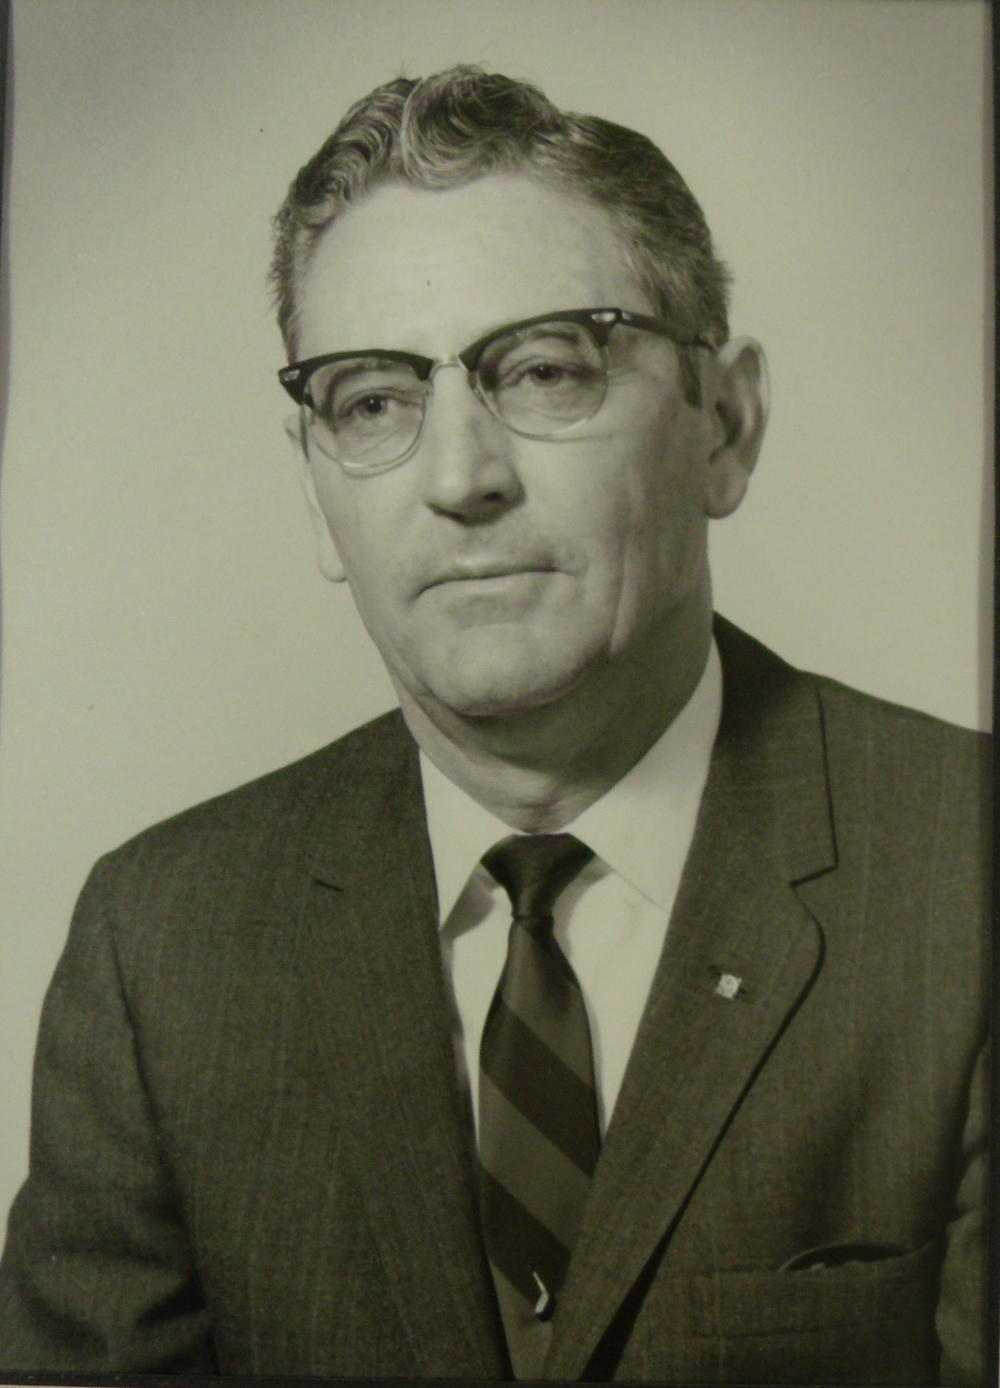 Dr. James B. Hollenhead 1961 - 1992.jpg